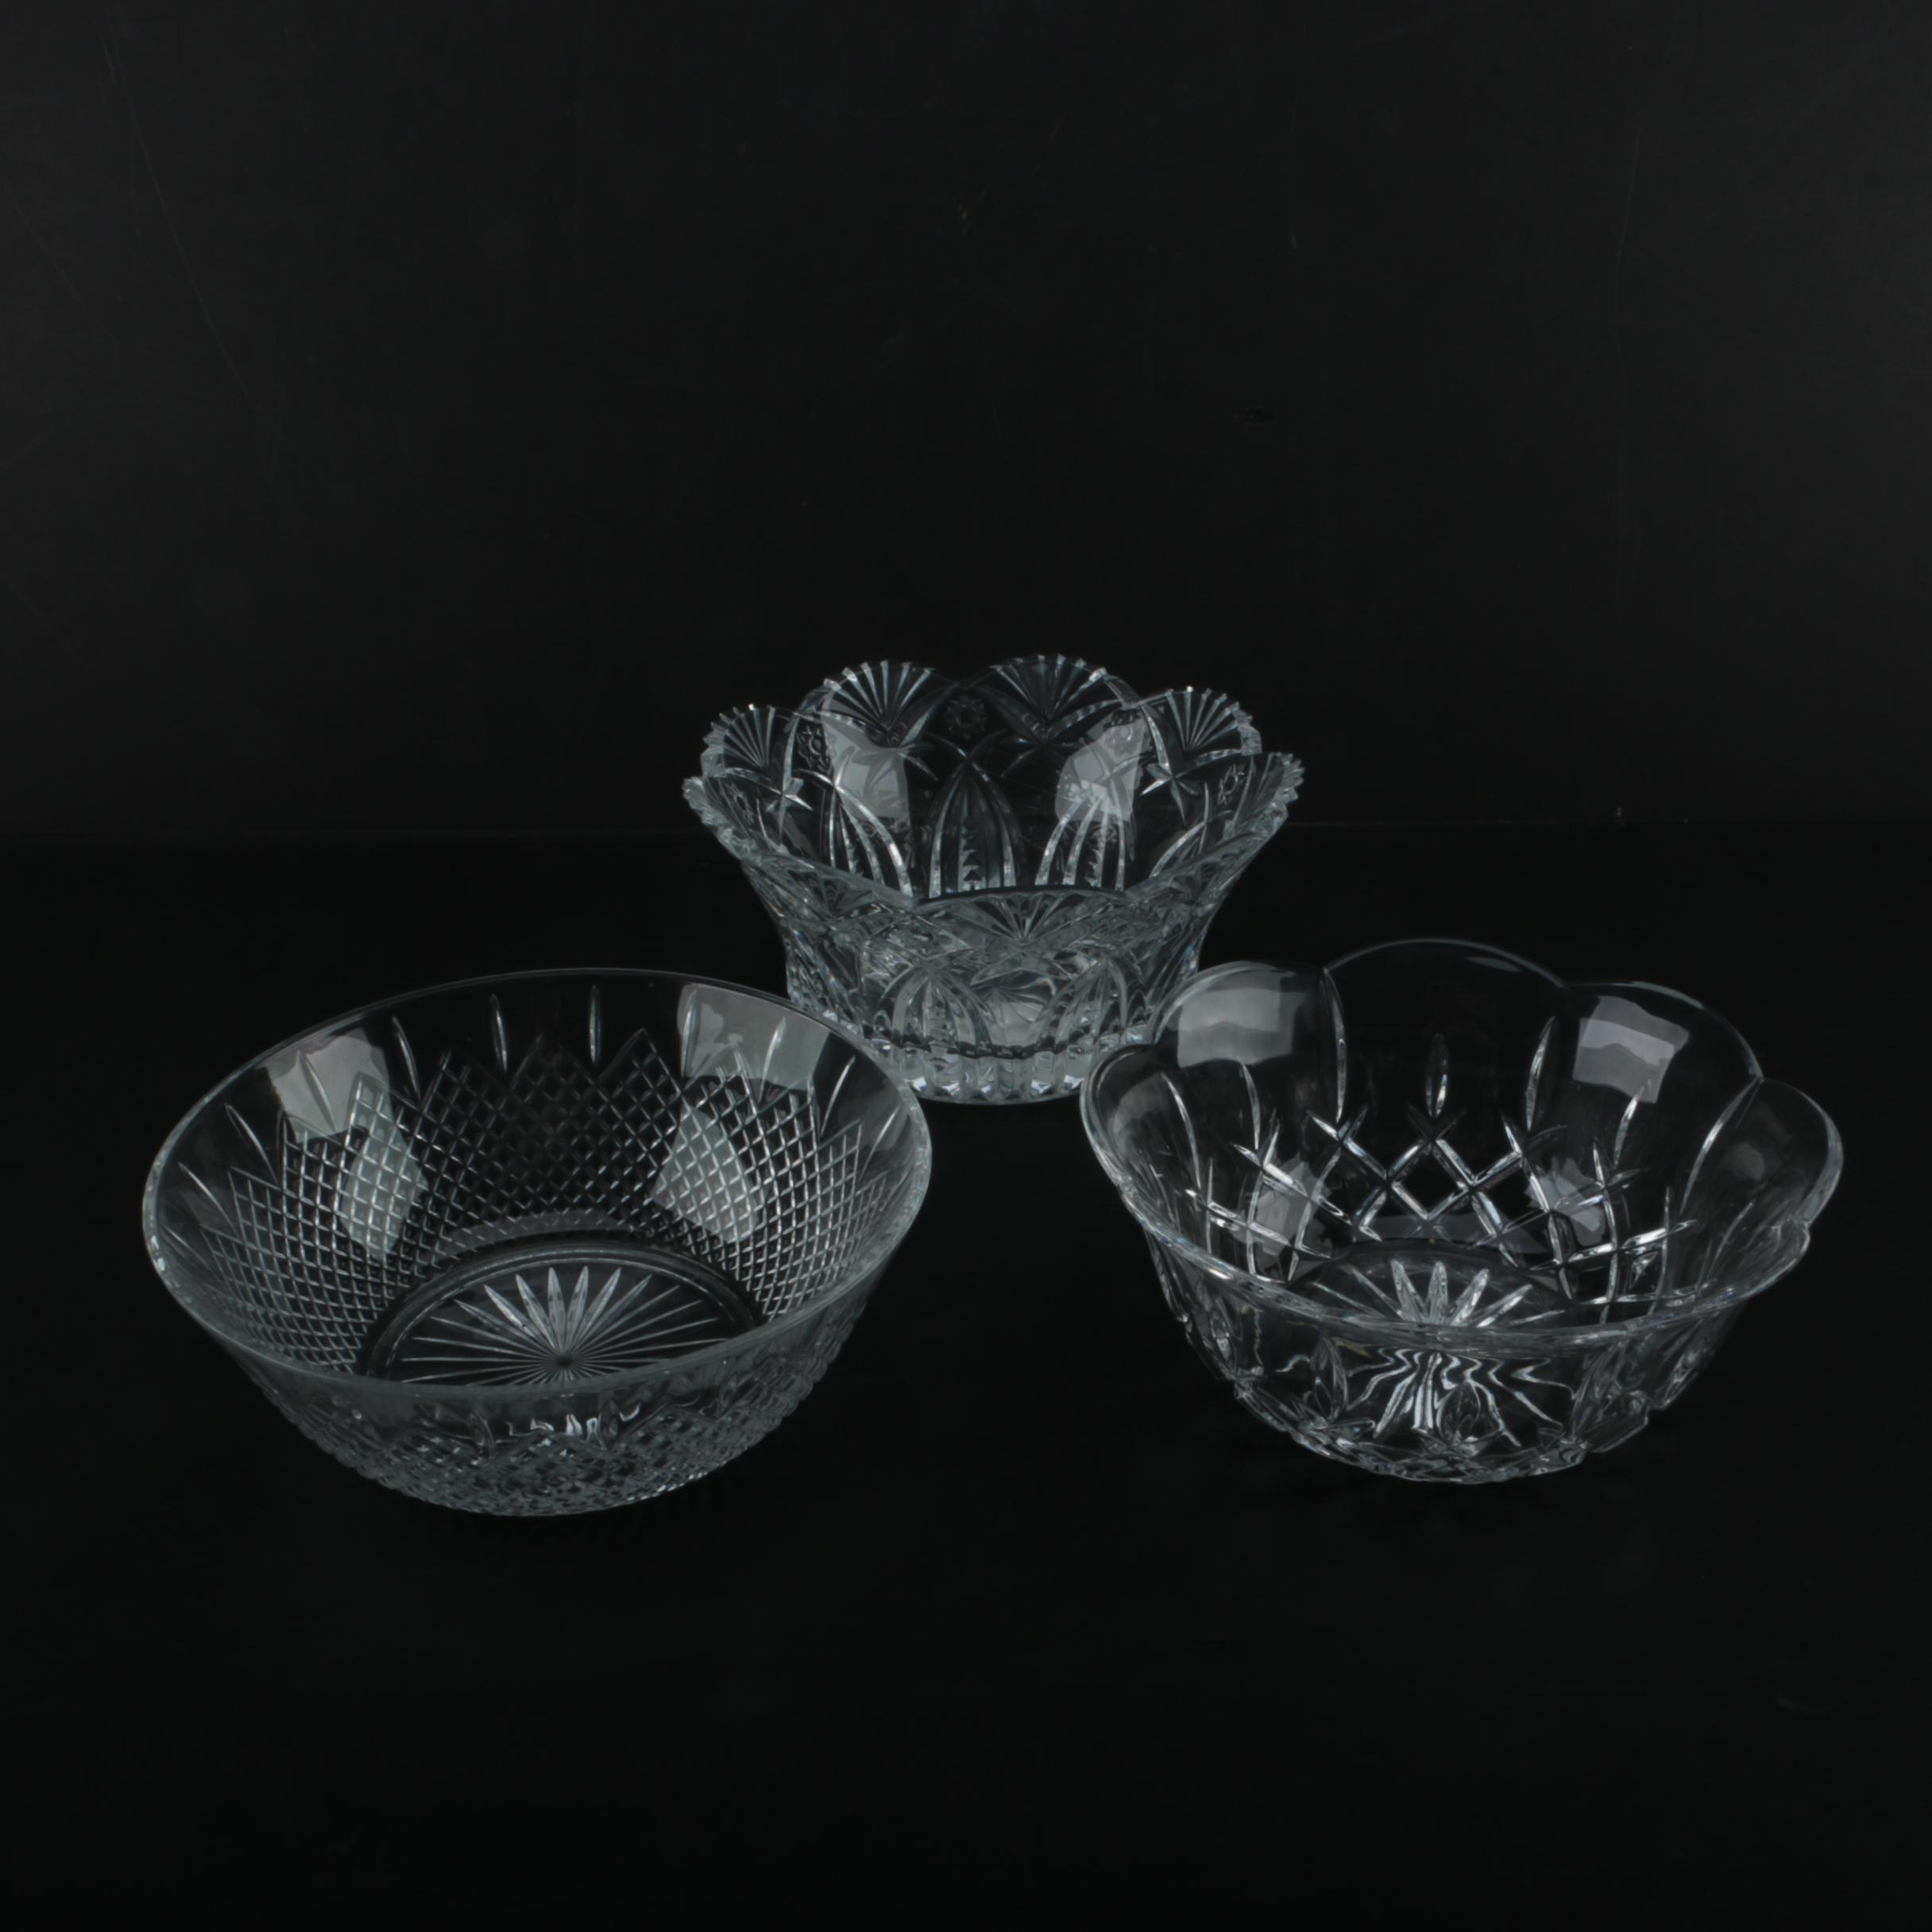 Cut Glass and Crystal Bowls